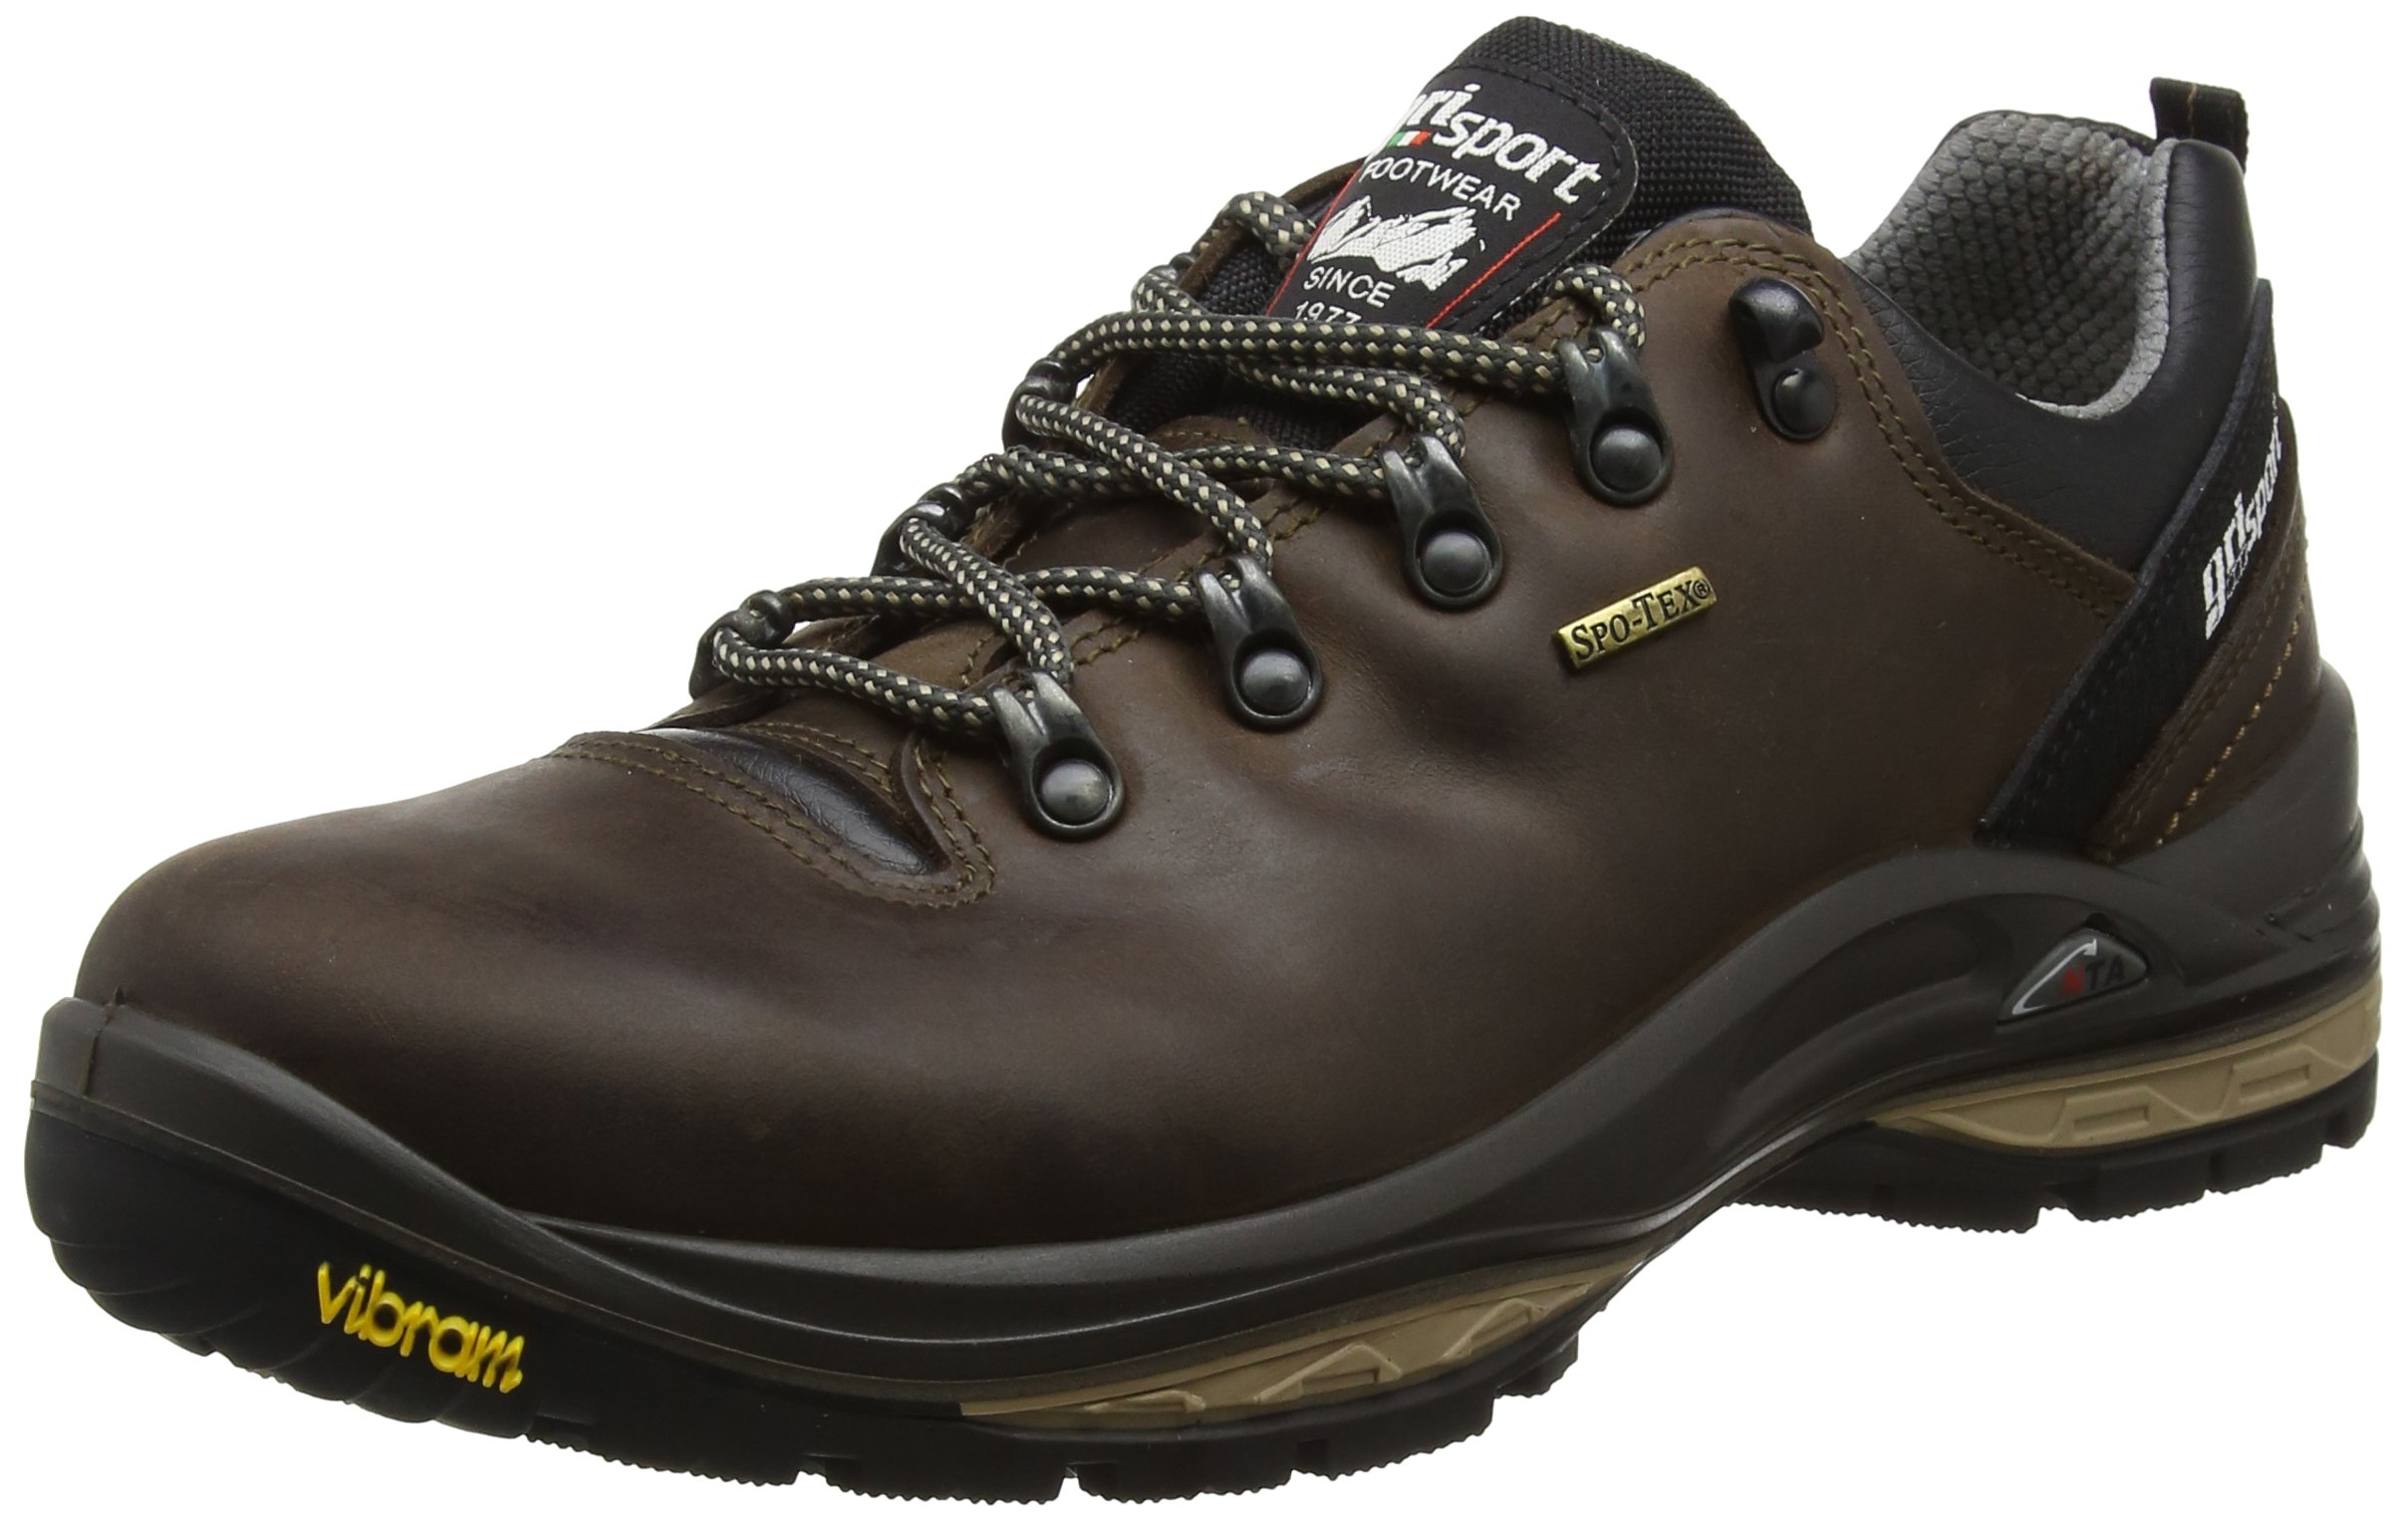 Grisport Men's Warrior Low Rise Hiking Boots 1